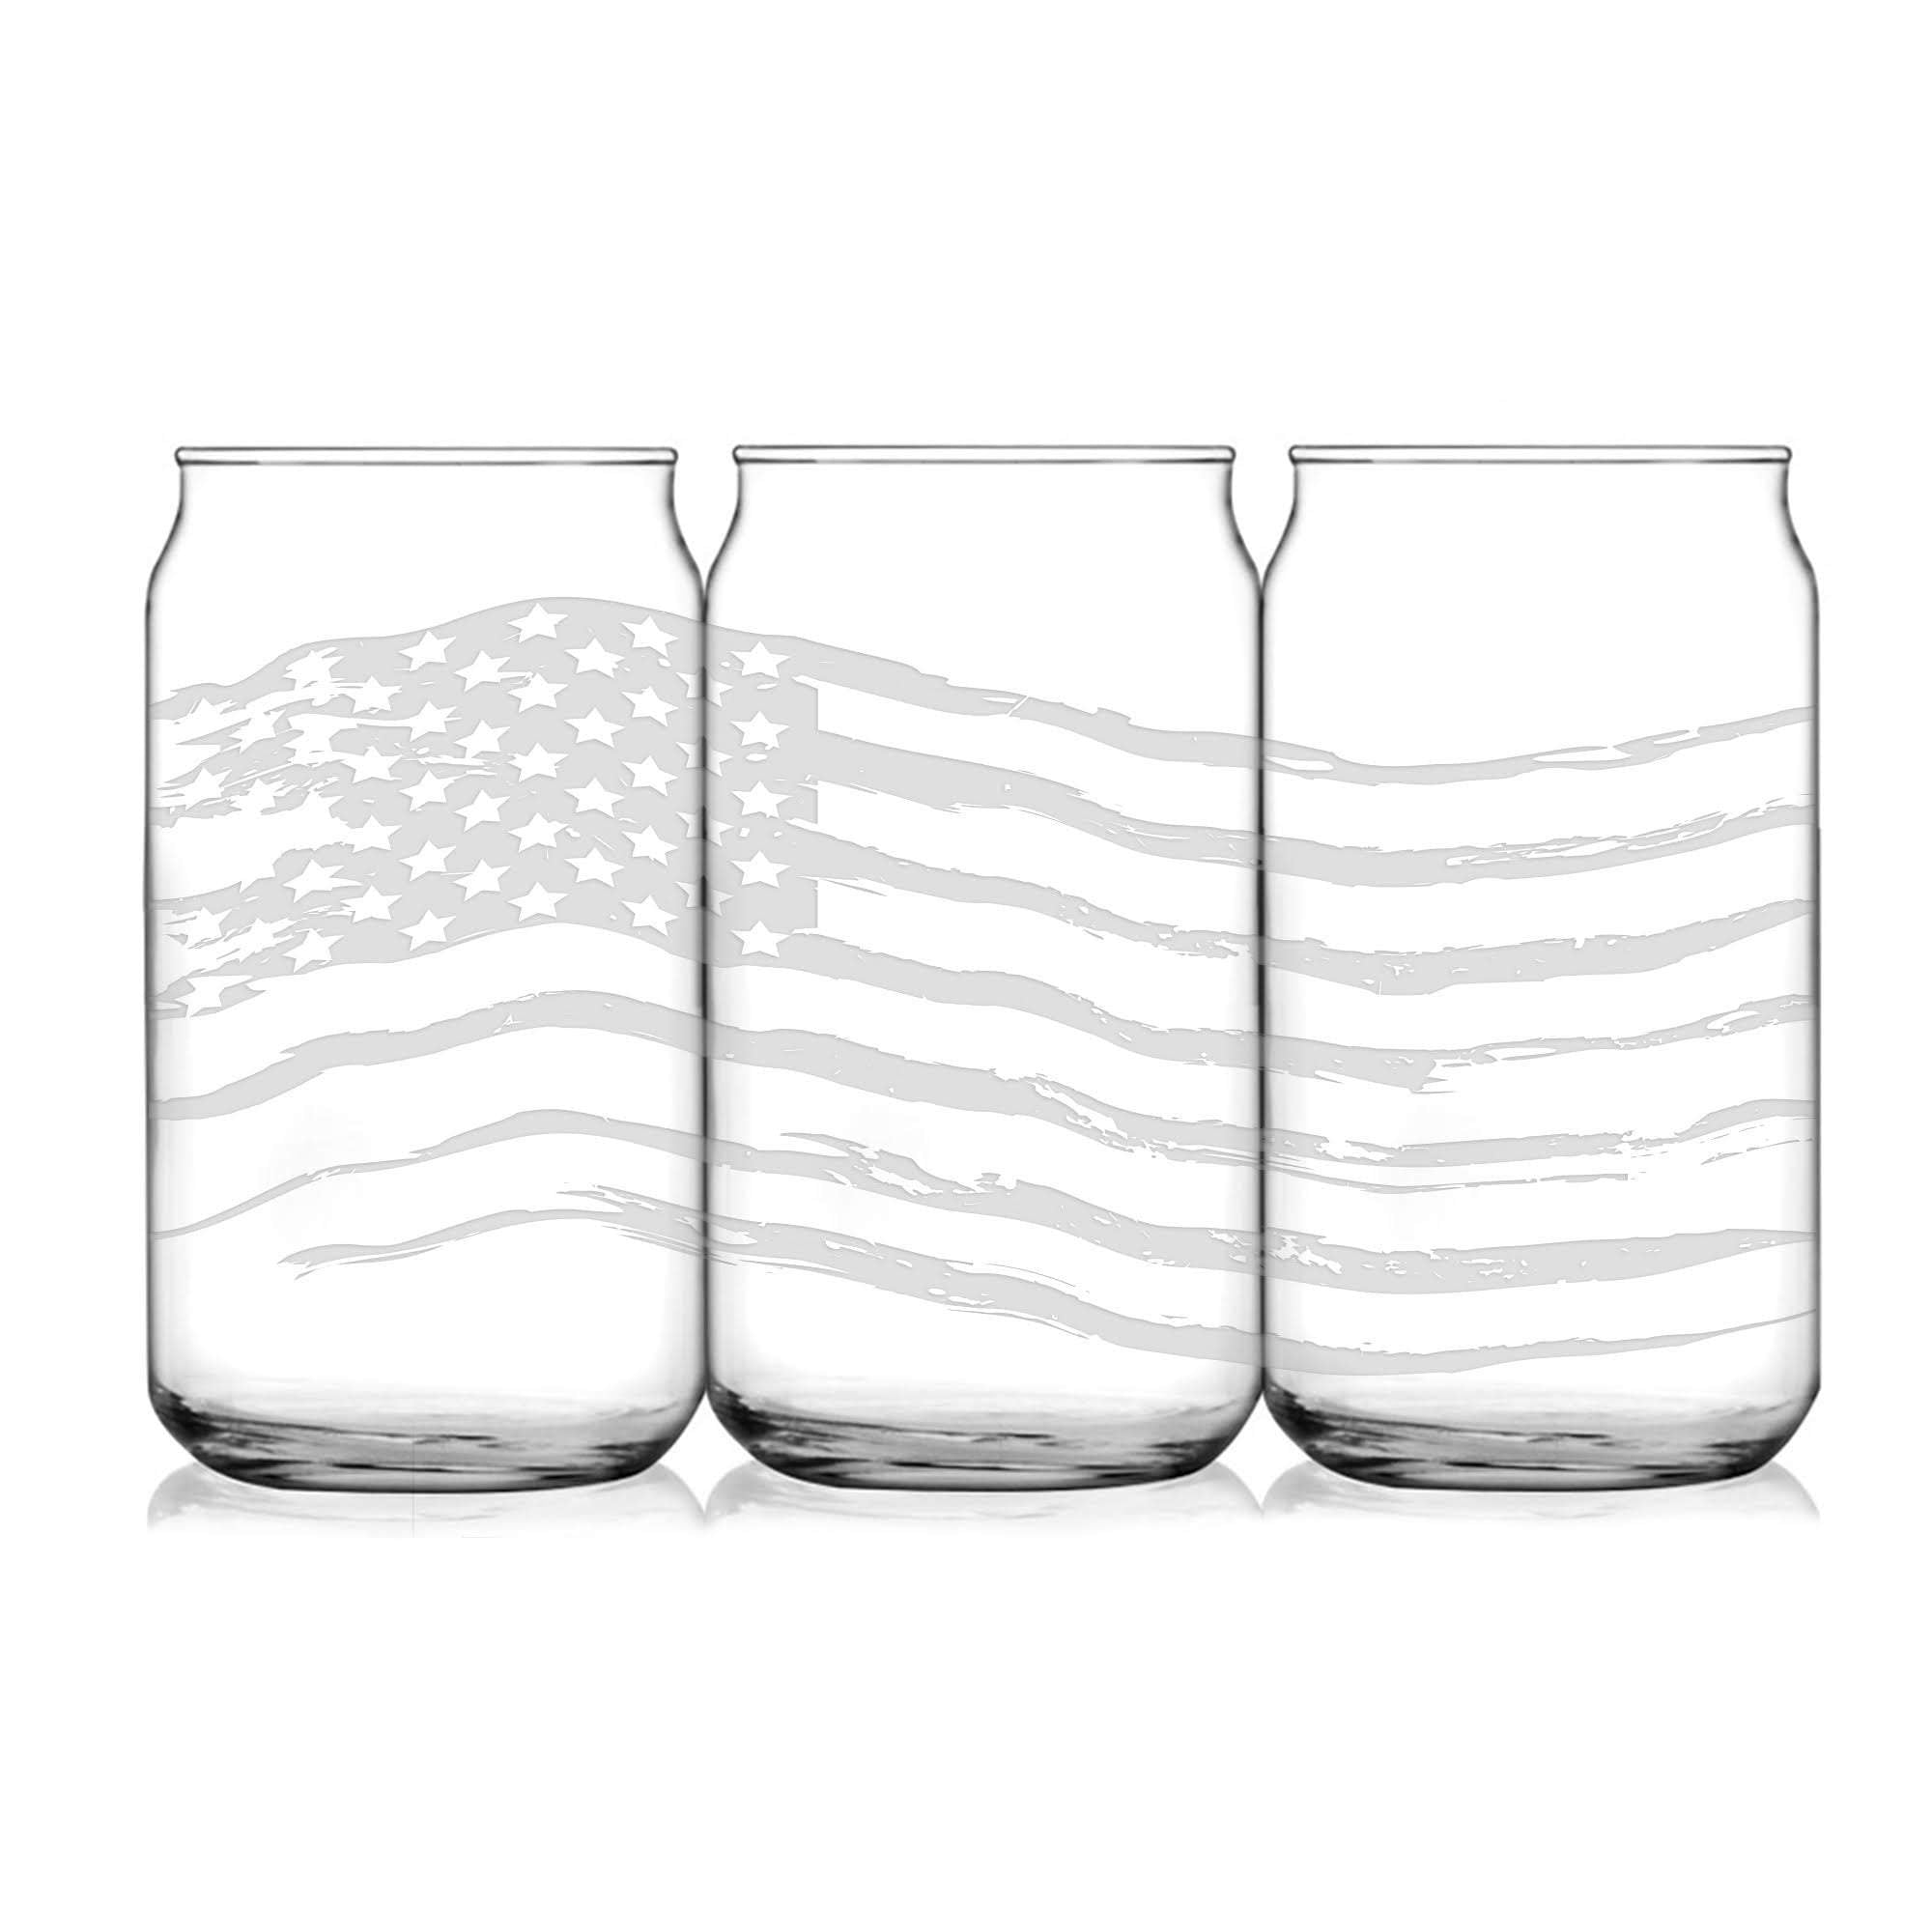 Full 360° Etched, All American Flag, 16 oz, Beer Can Glass by Integrity Bottles